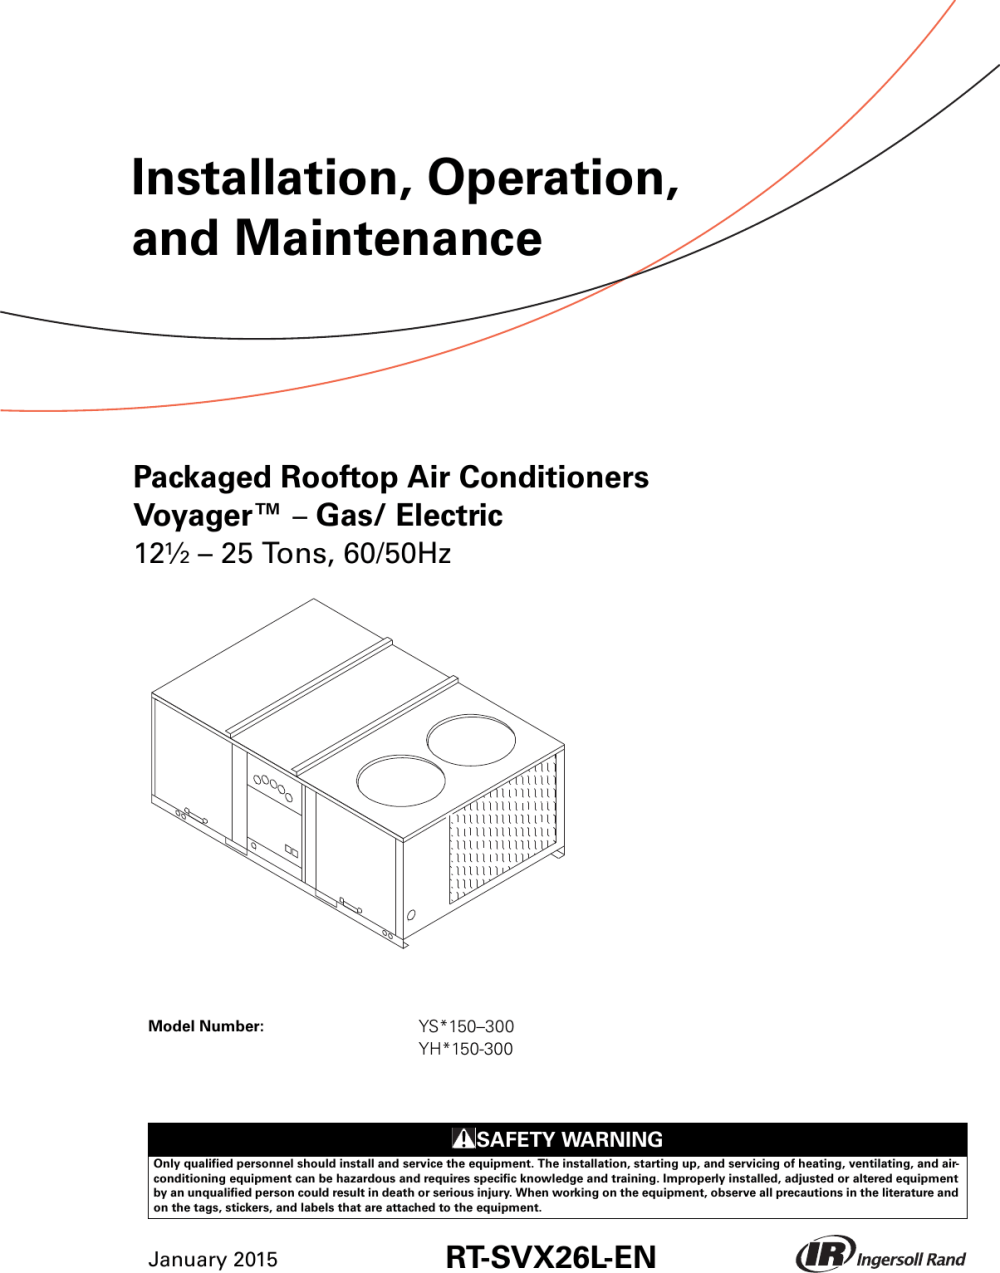 medium resolution of trane voyager 12 5 to 25 tons installation and maintenance manual packaged rooftop air conditioners voyager gas electric